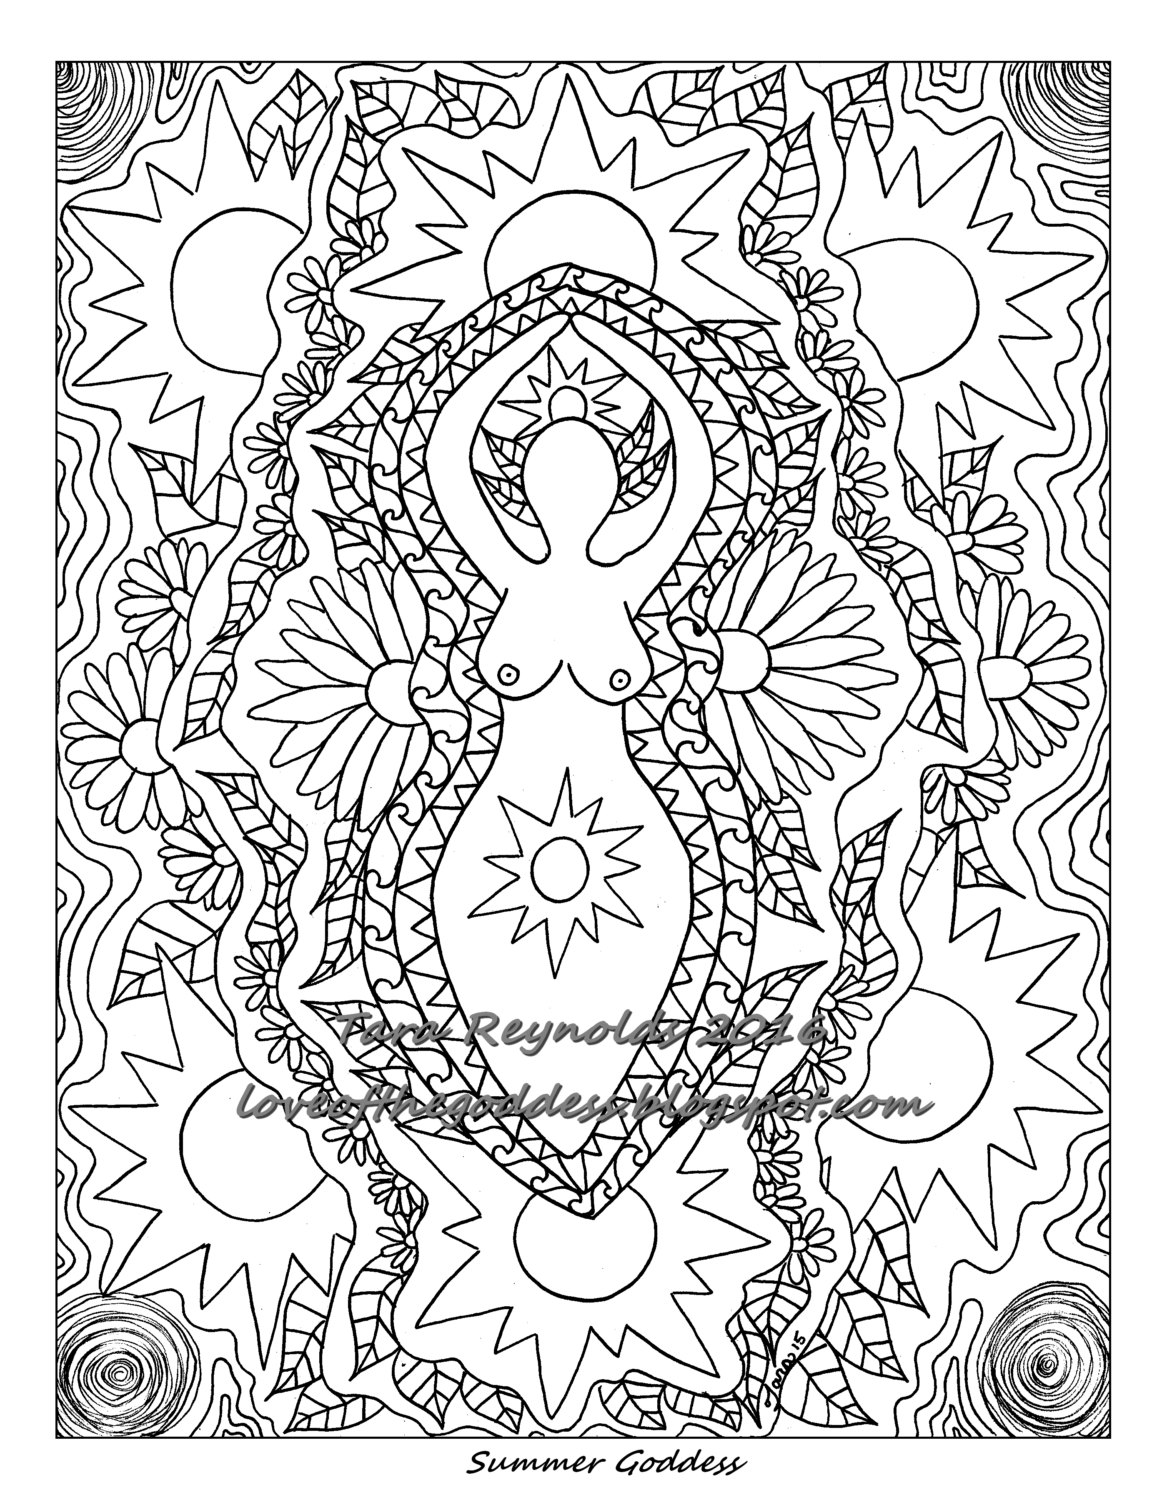 1167x1500 Interesting Winter Solstice Coloring Pages Printable Page Summ